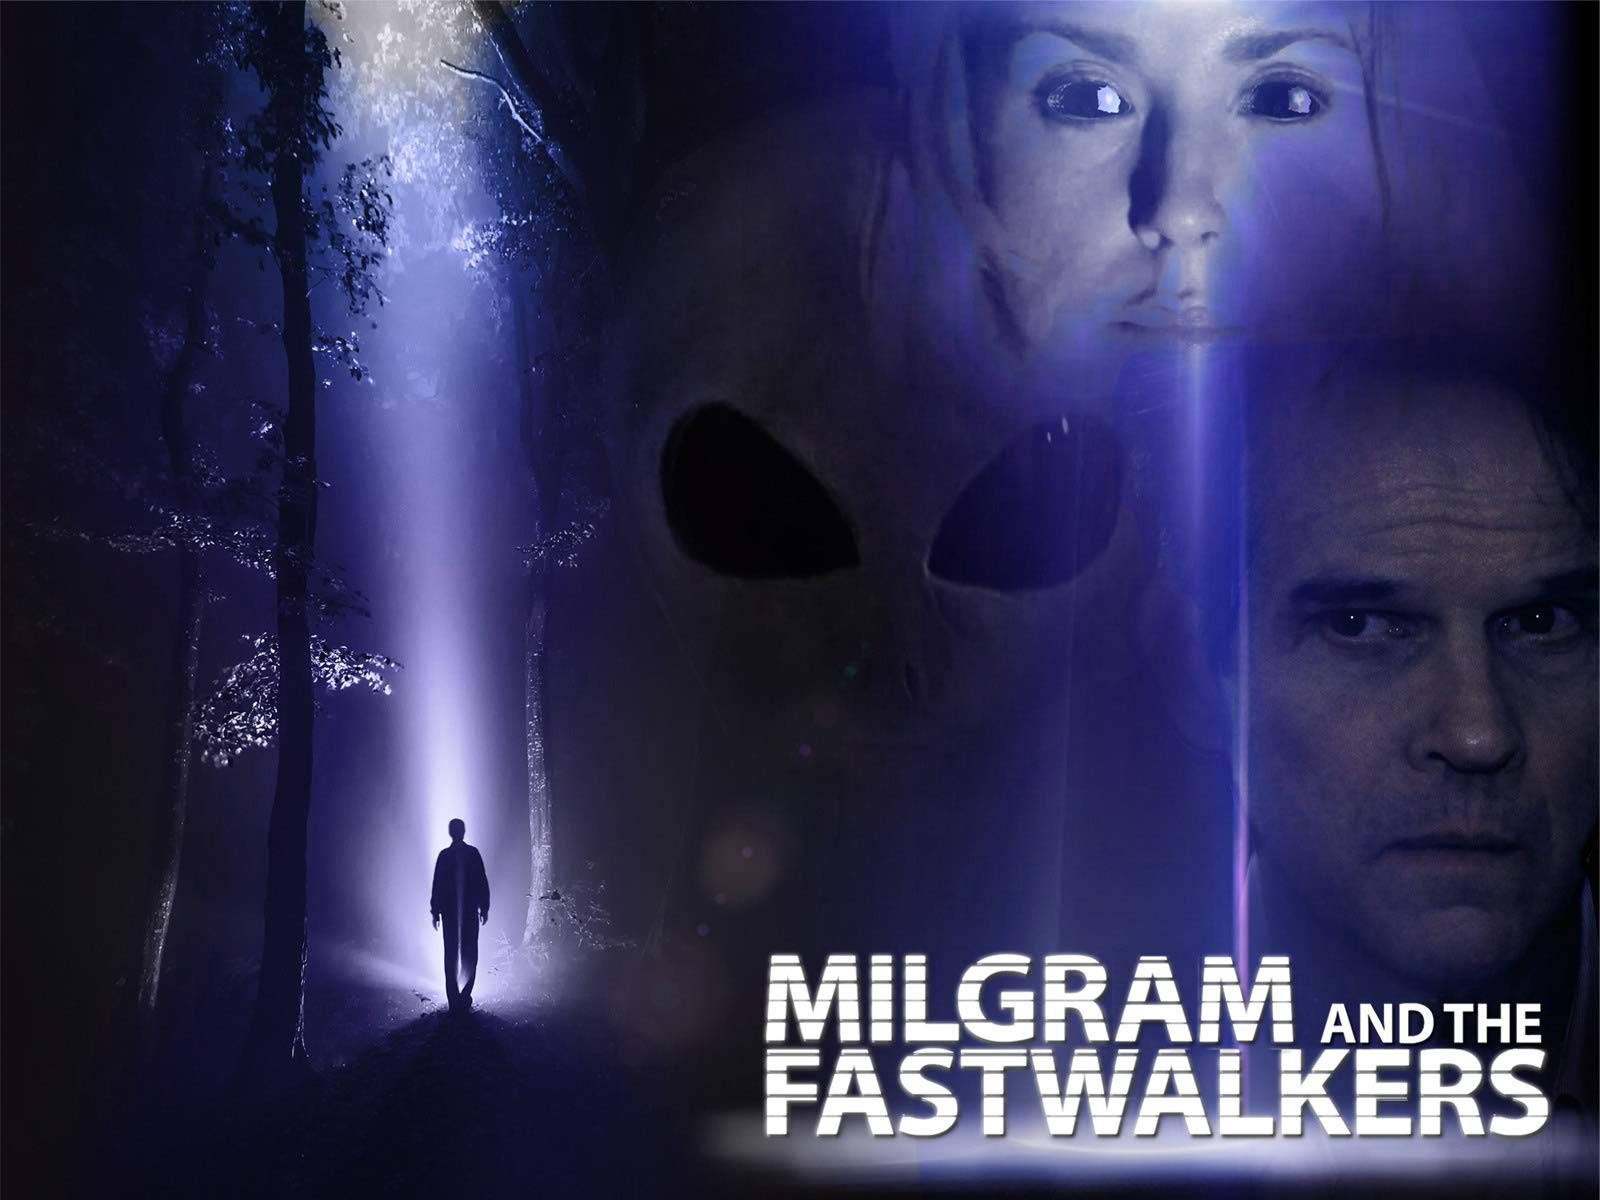 Milgram and the Fastwalkers